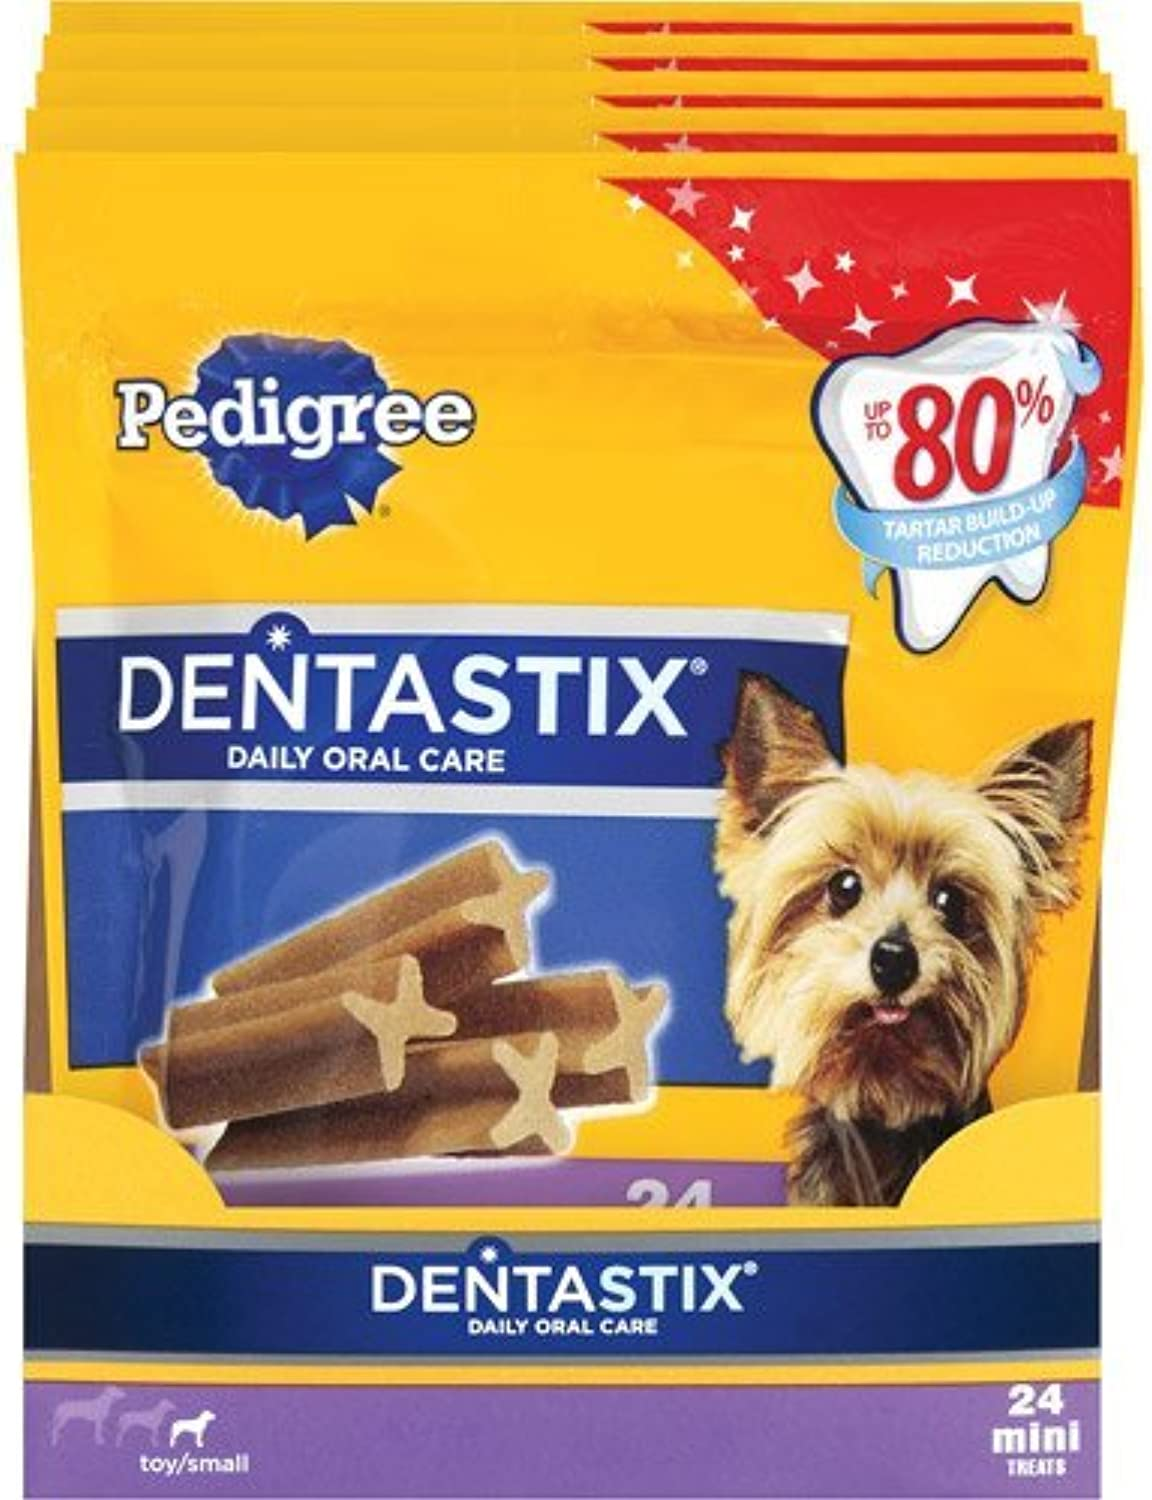 Dentastix Daily Oral Care for Toy Small Dogs (Pack of 5)